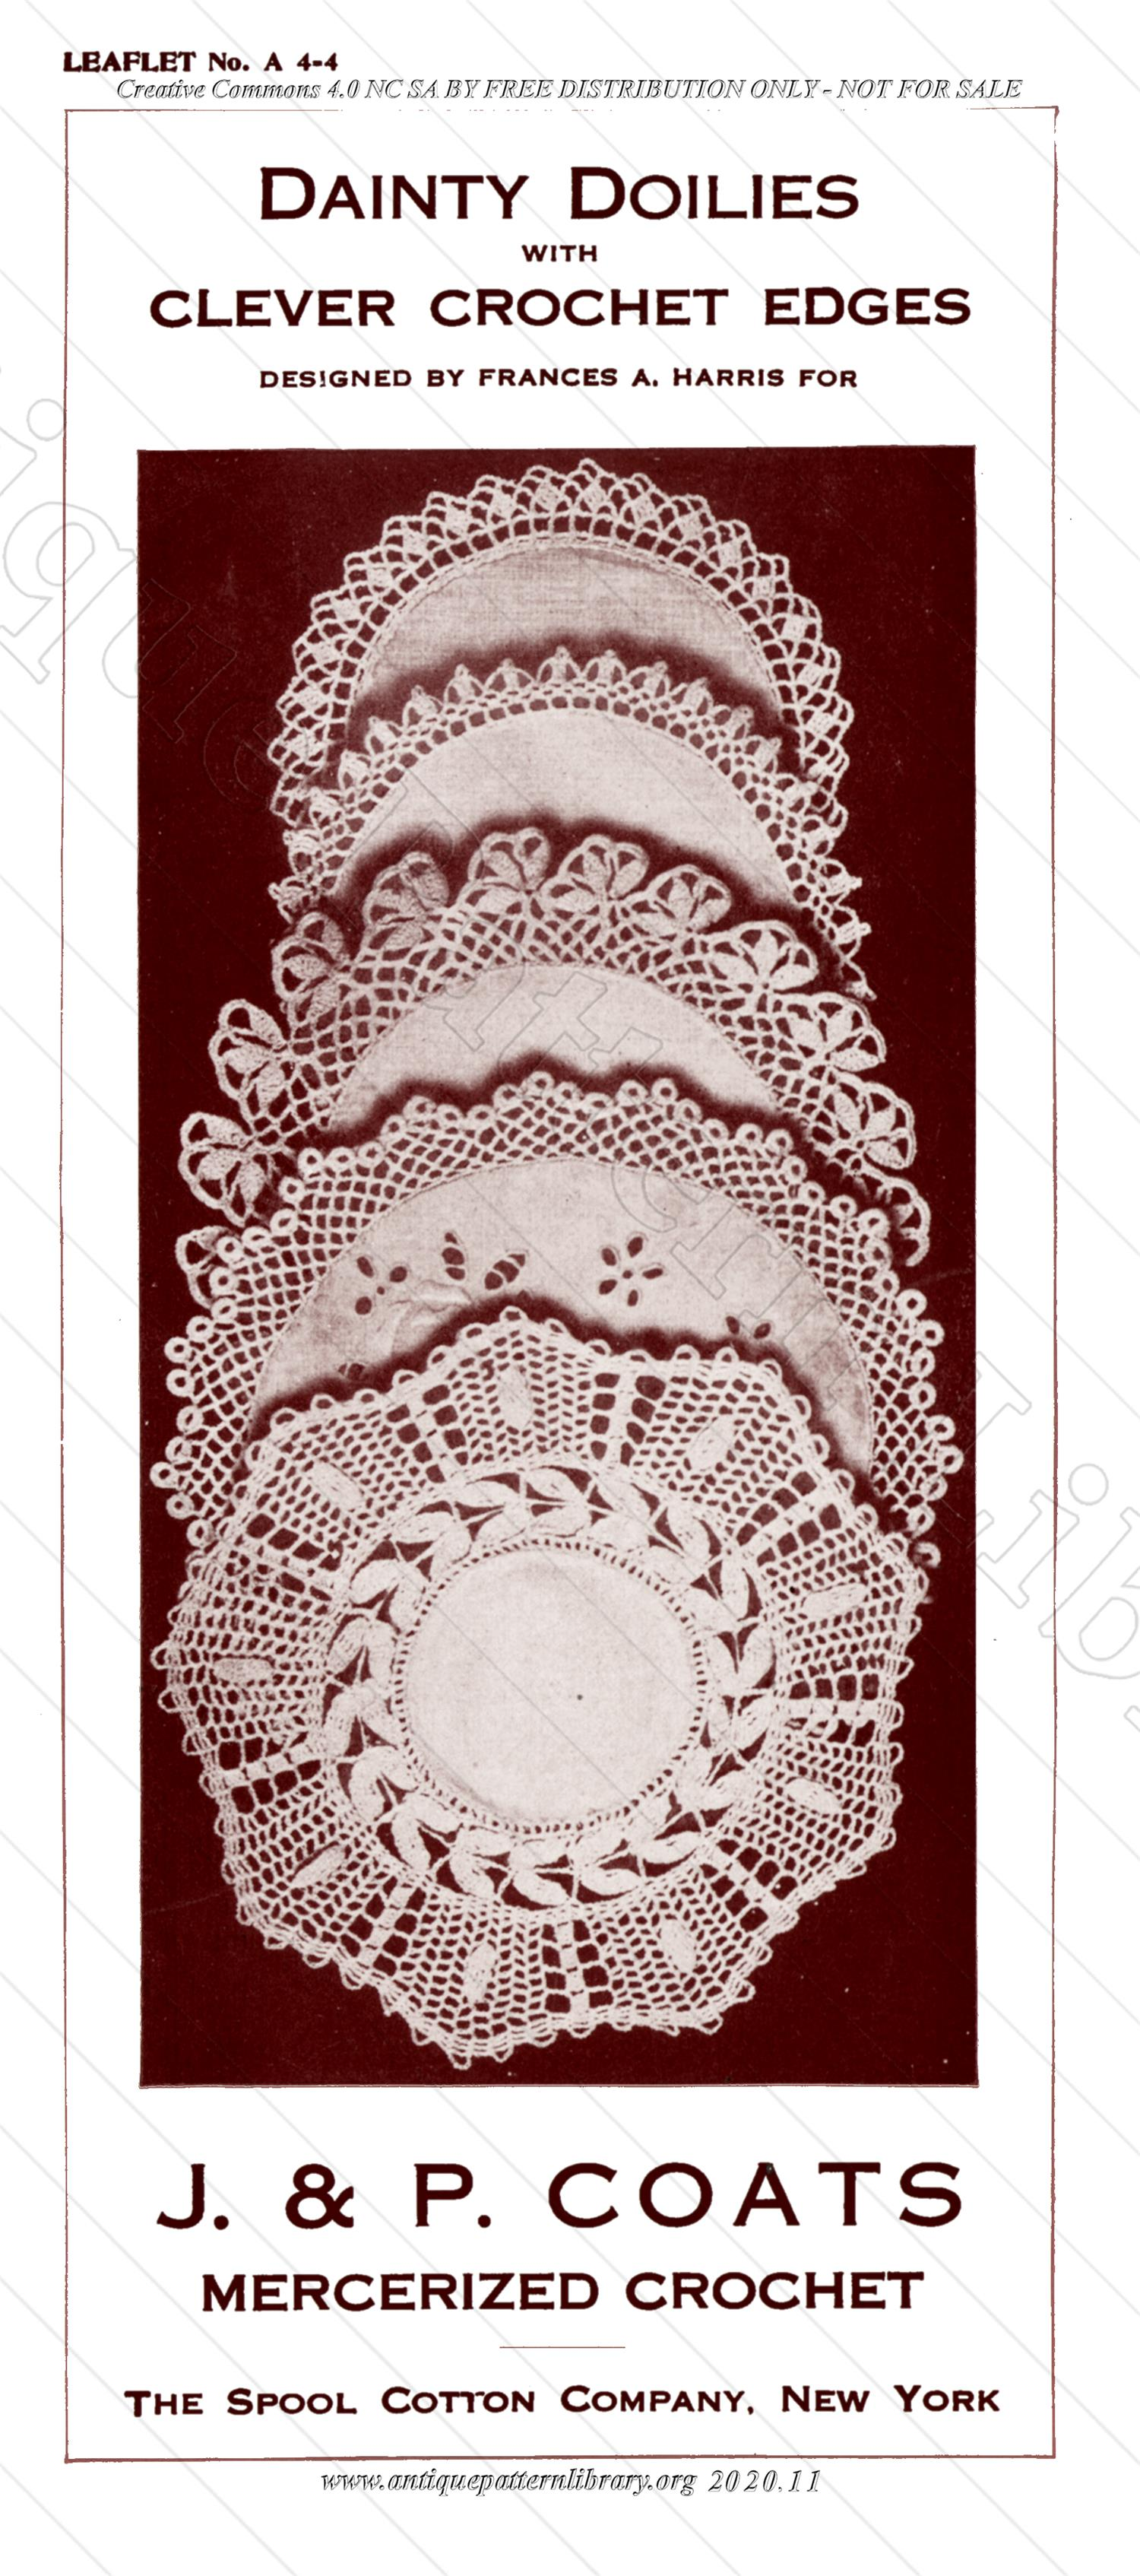 E-WM063 Dainty Doilies with Clever Crochet Edges